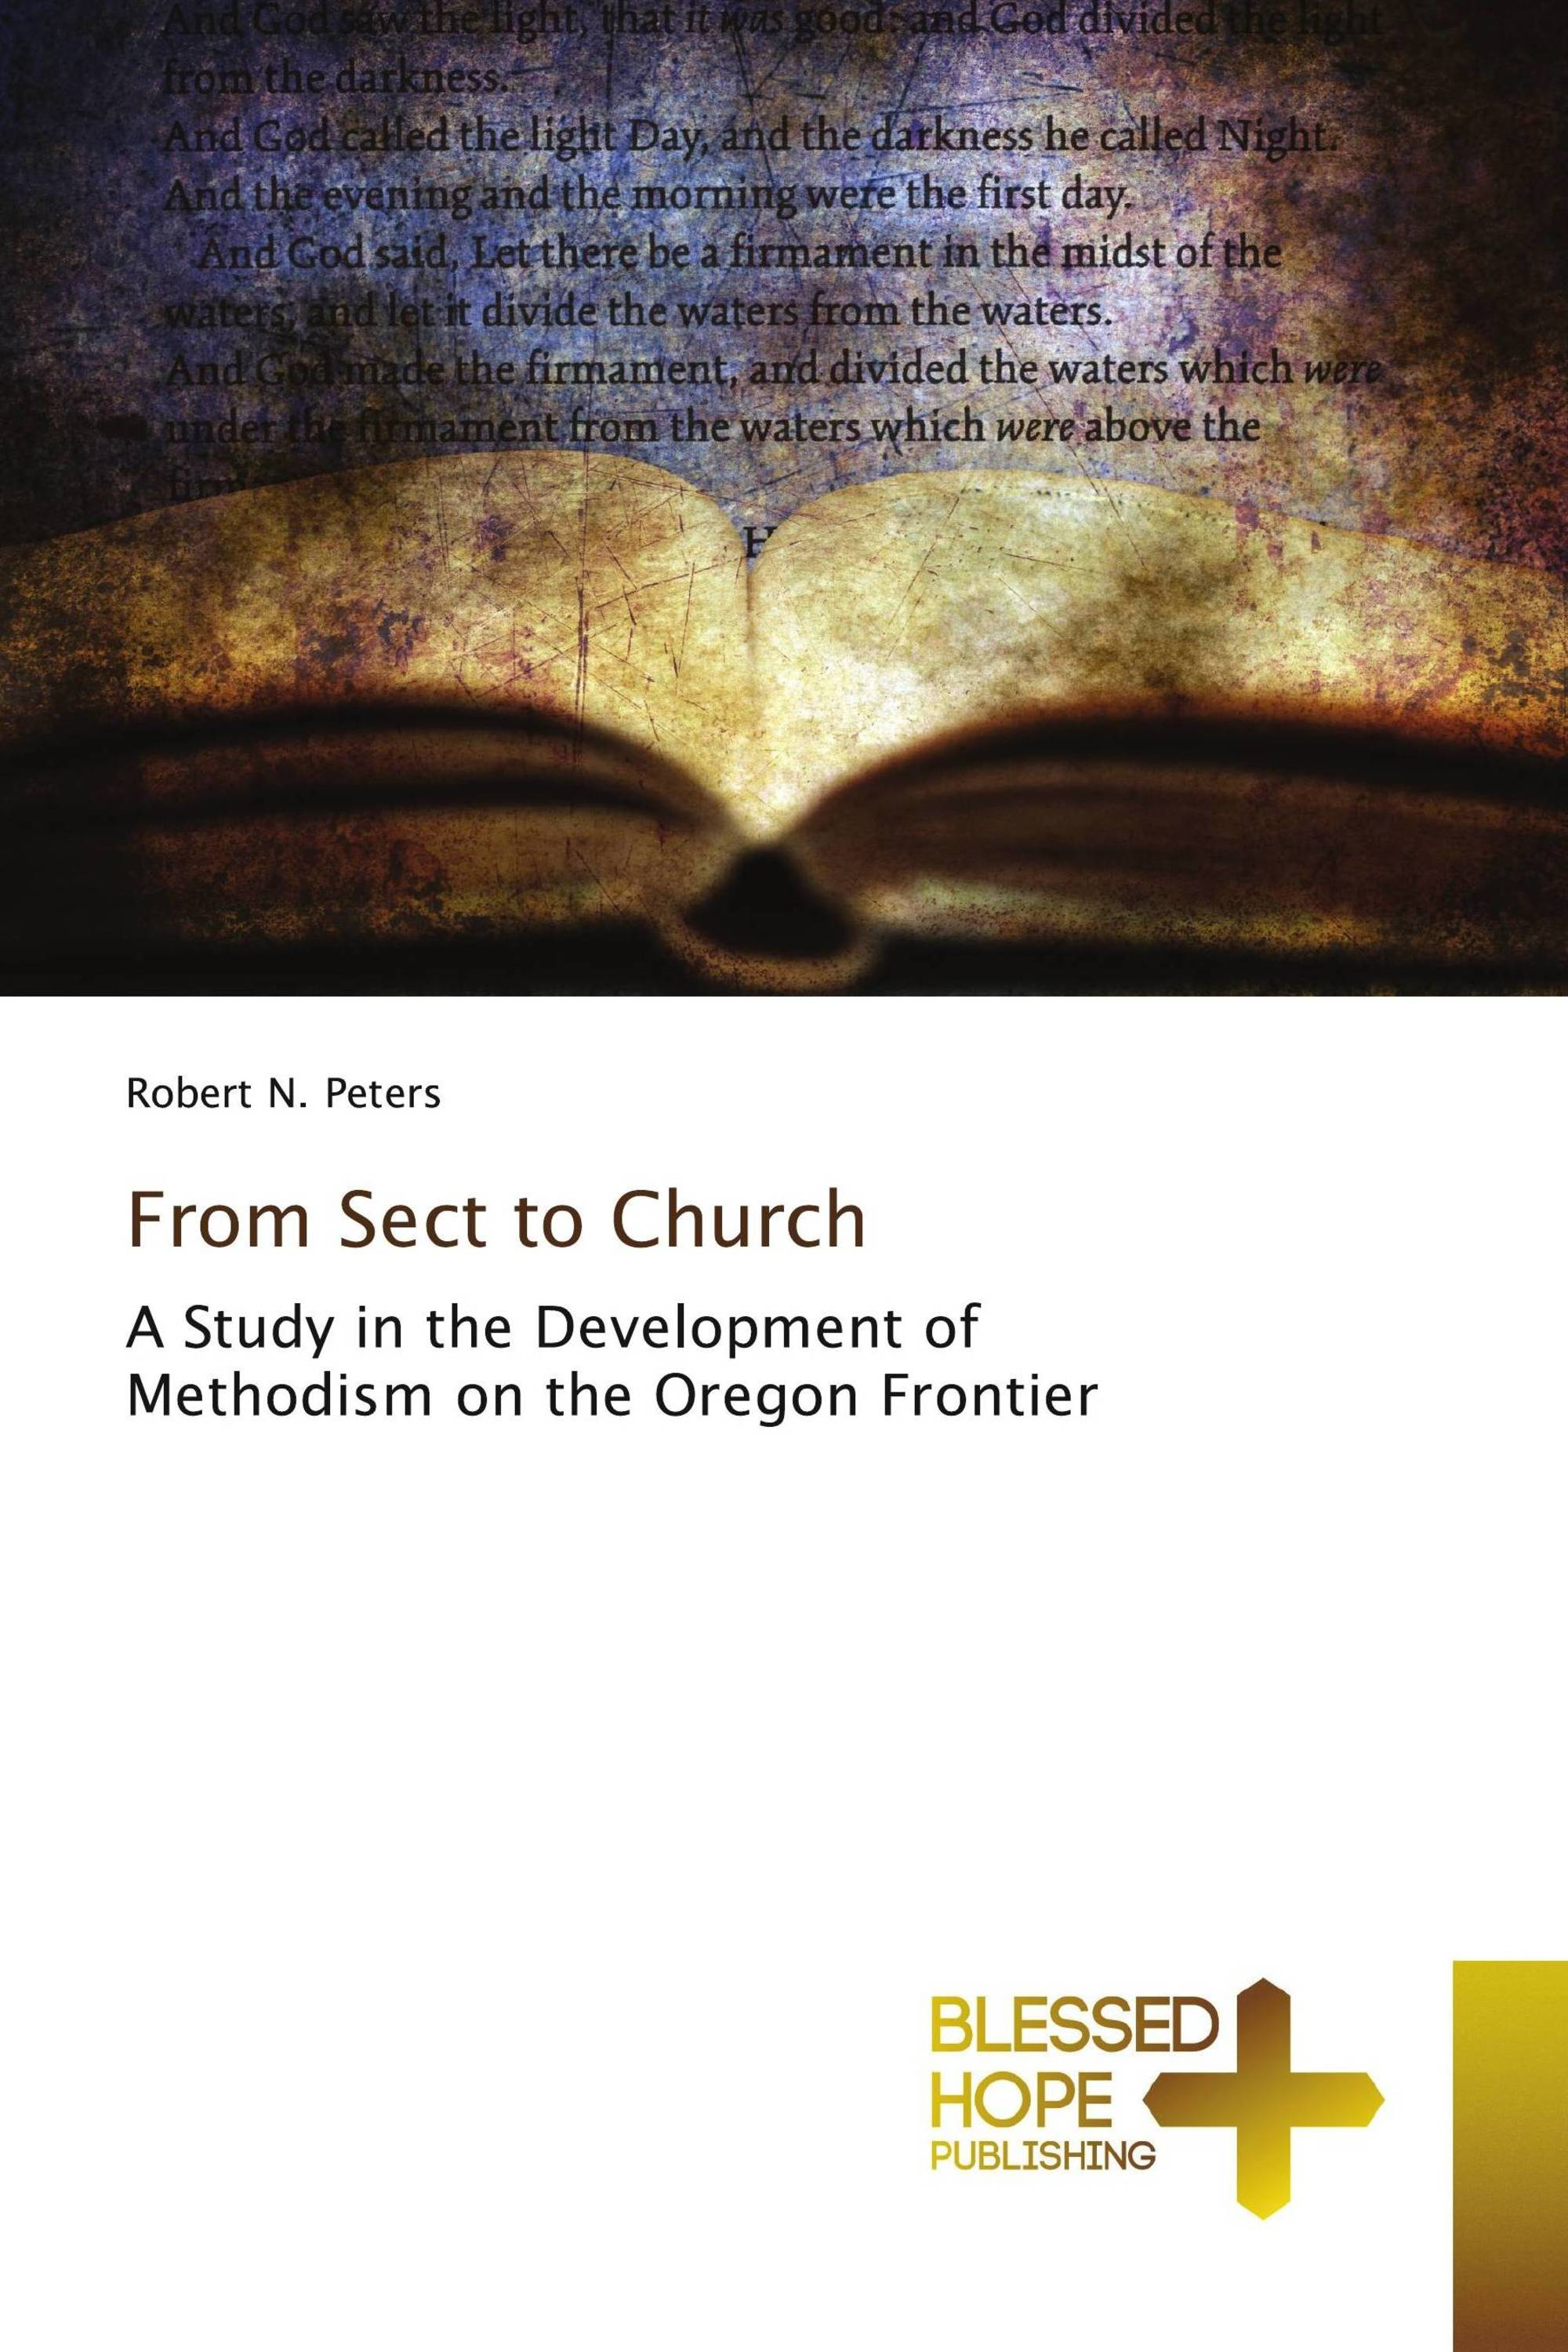 From Sect to Church